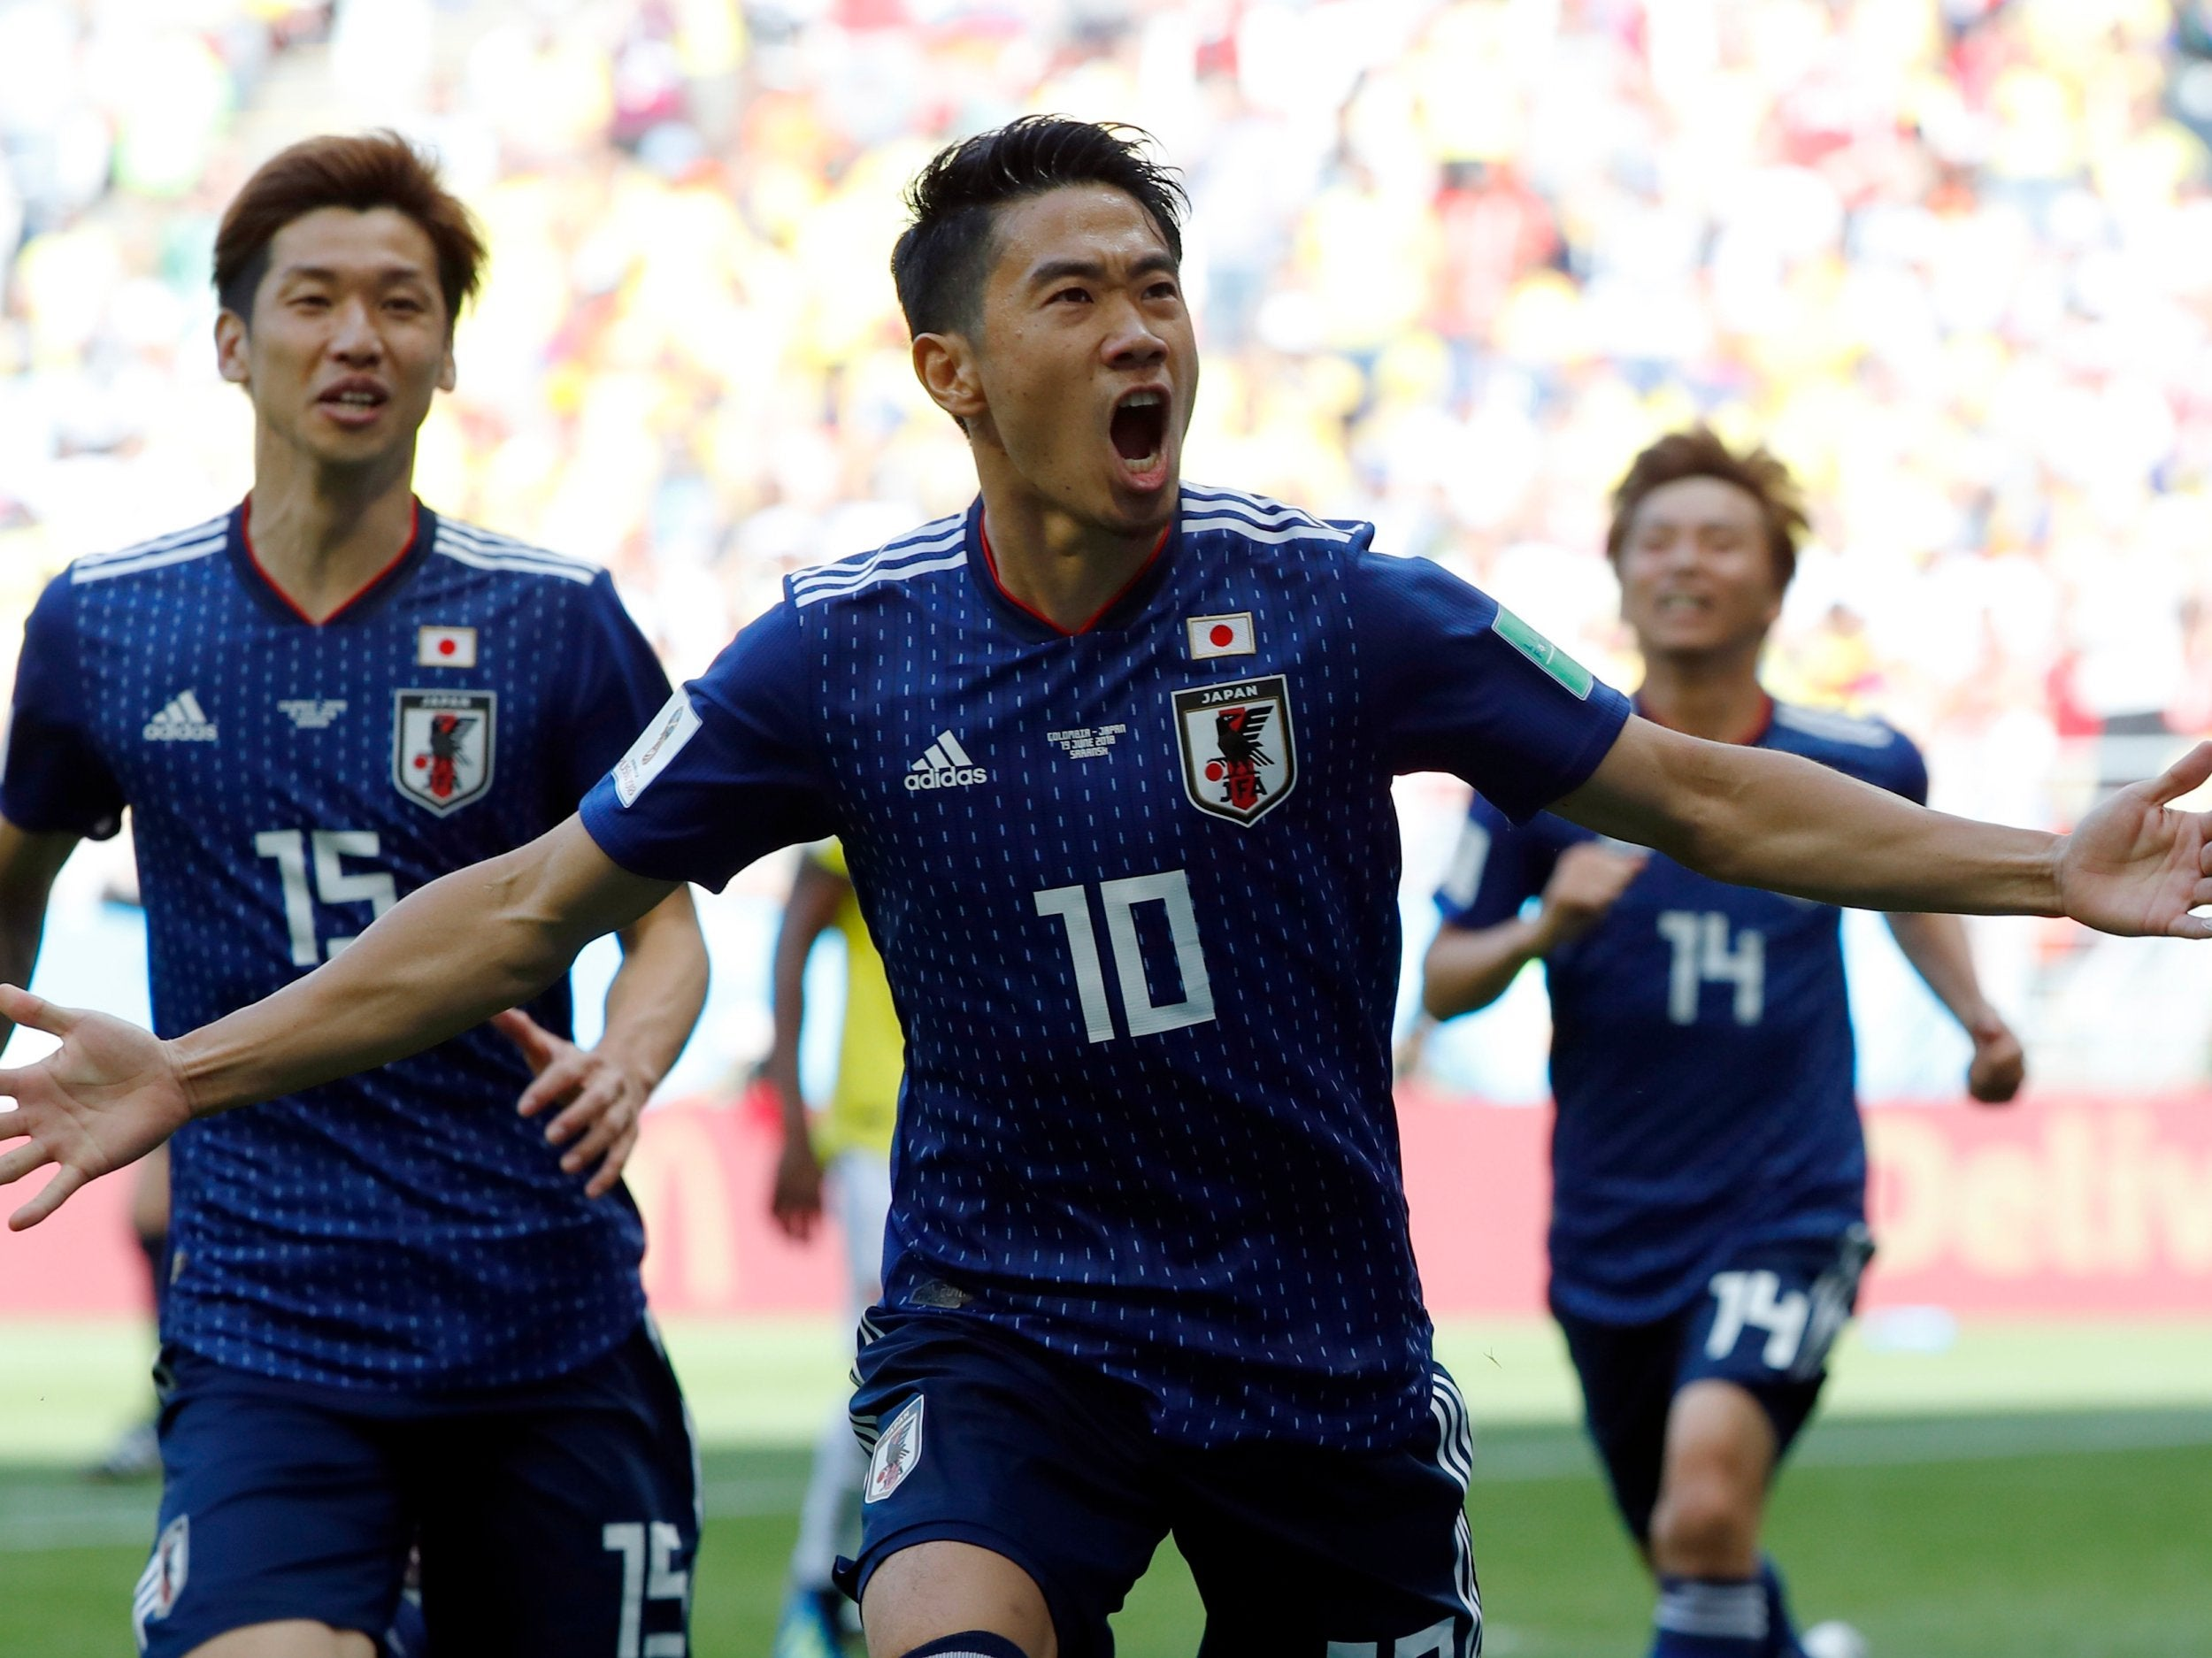 Colombia vs Japan LIVE World Cup 2018: James Rodriguez out and early red card - latest score, goals and updates